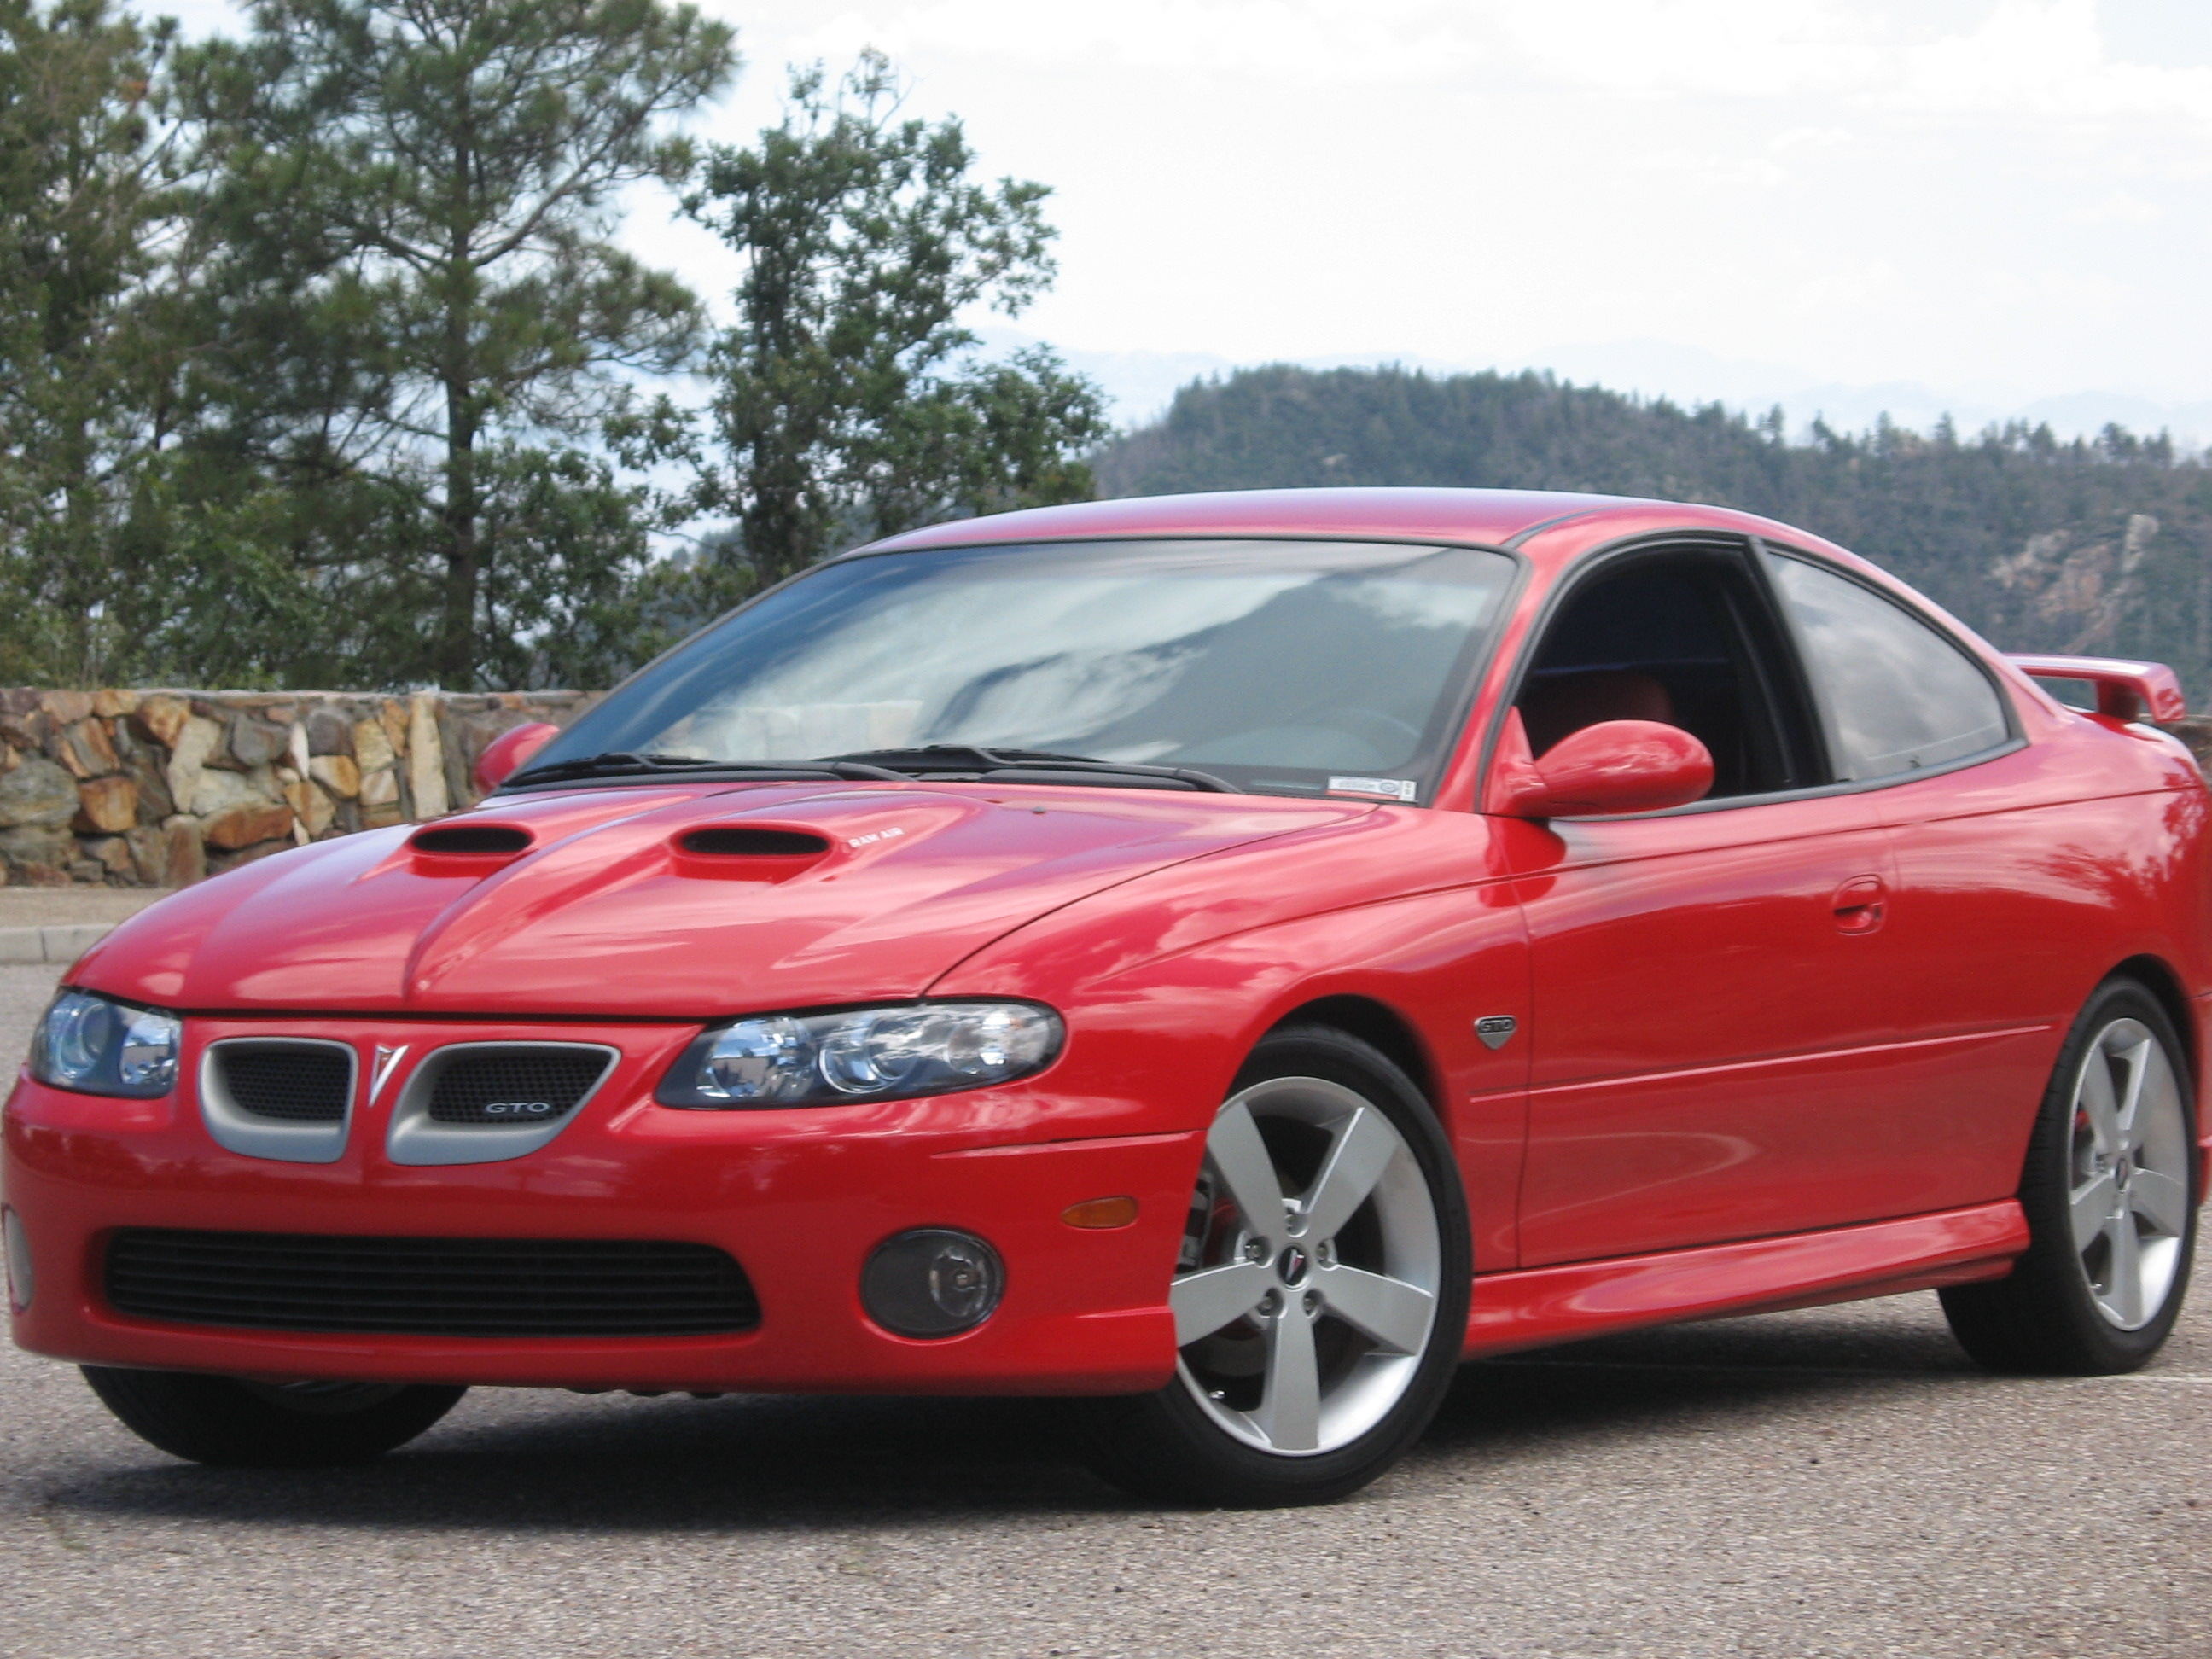 2004 pontiac gto information and photos zombiedrive. Black Bedroom Furniture Sets. Home Design Ideas